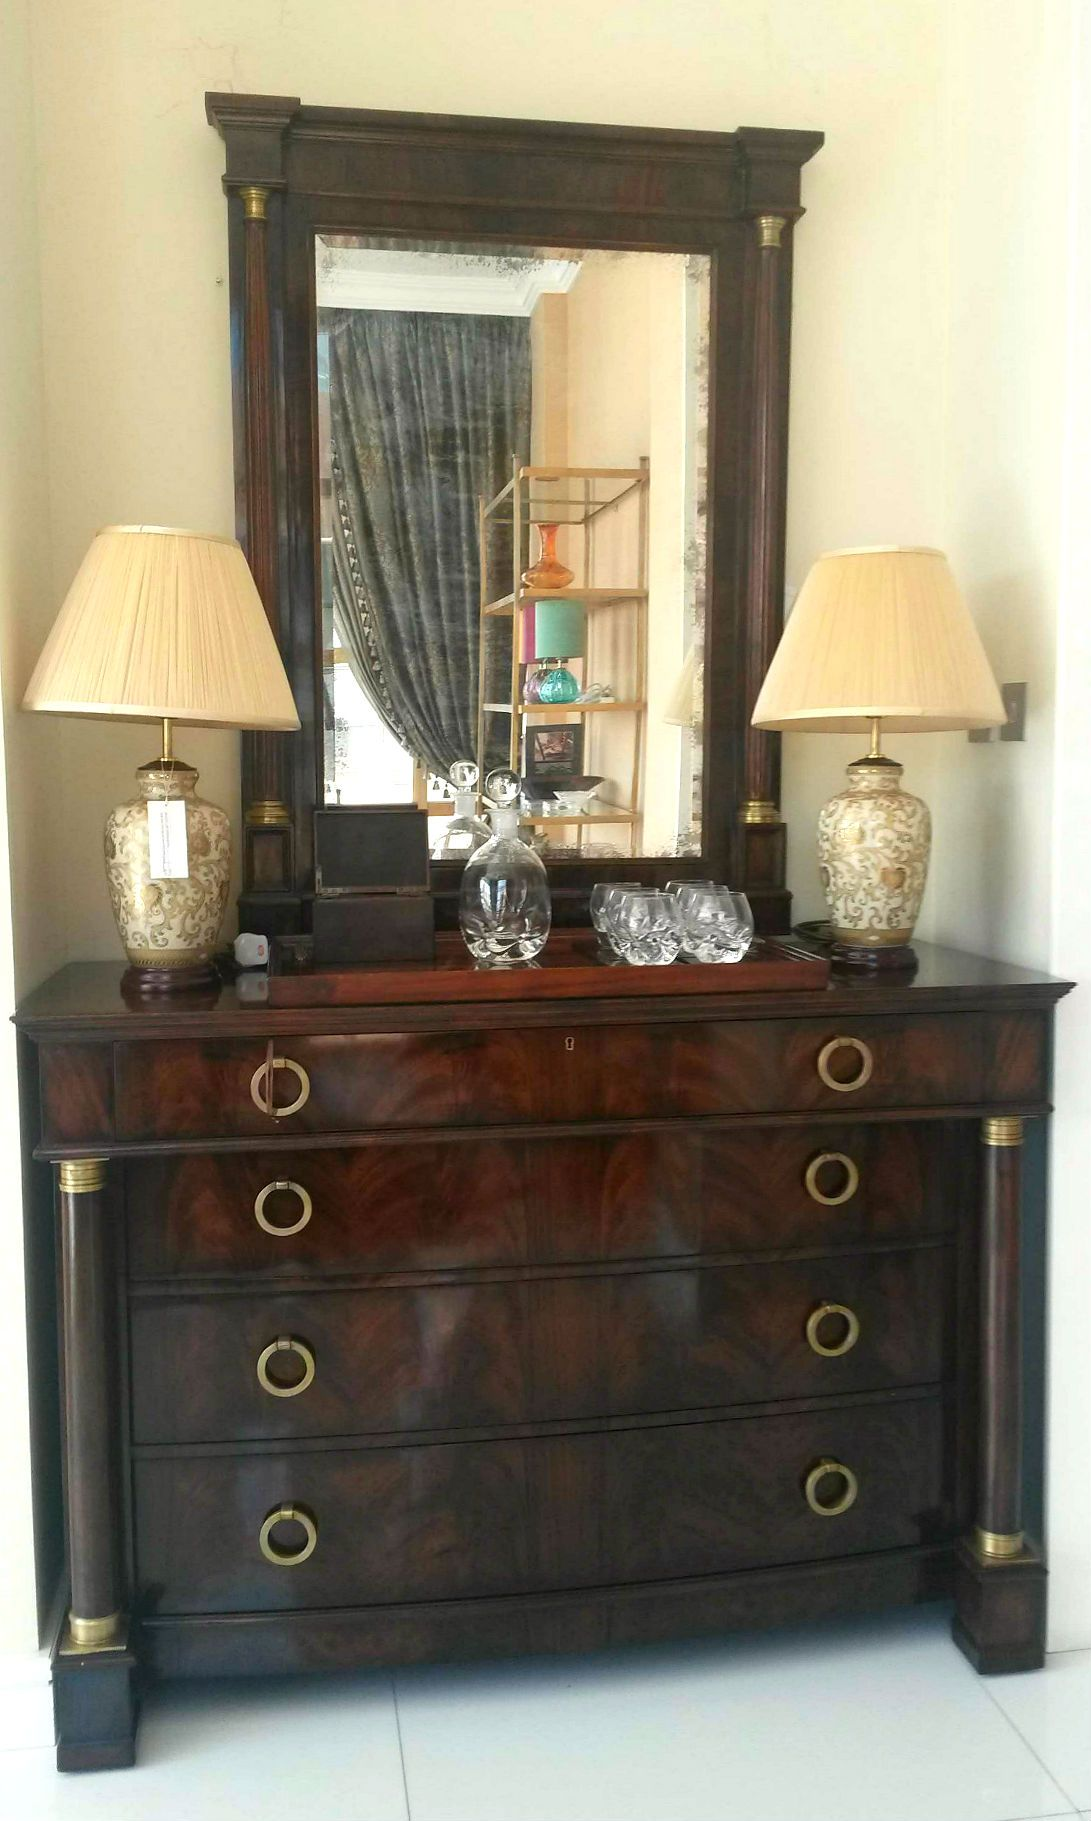 Furniture Stores in Knoxville - Jonathan Charles Furniture - Braden's Lifestyles Furniture ...